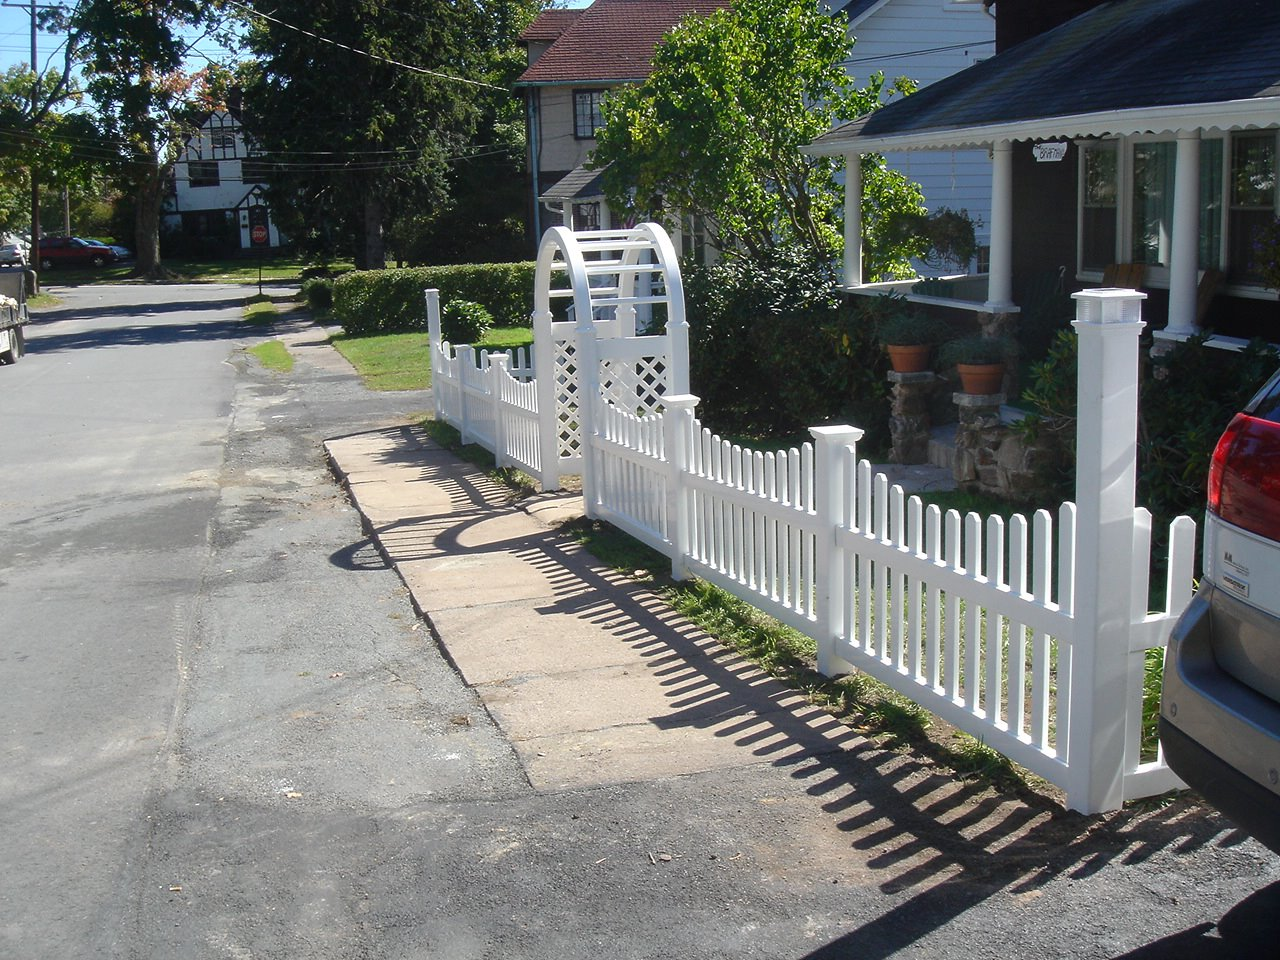 Vinyl picket fence with new england post caps and palace solar cap vinyl picket fence with new england post caps and palace solar cap on the corner posts baanklon Images